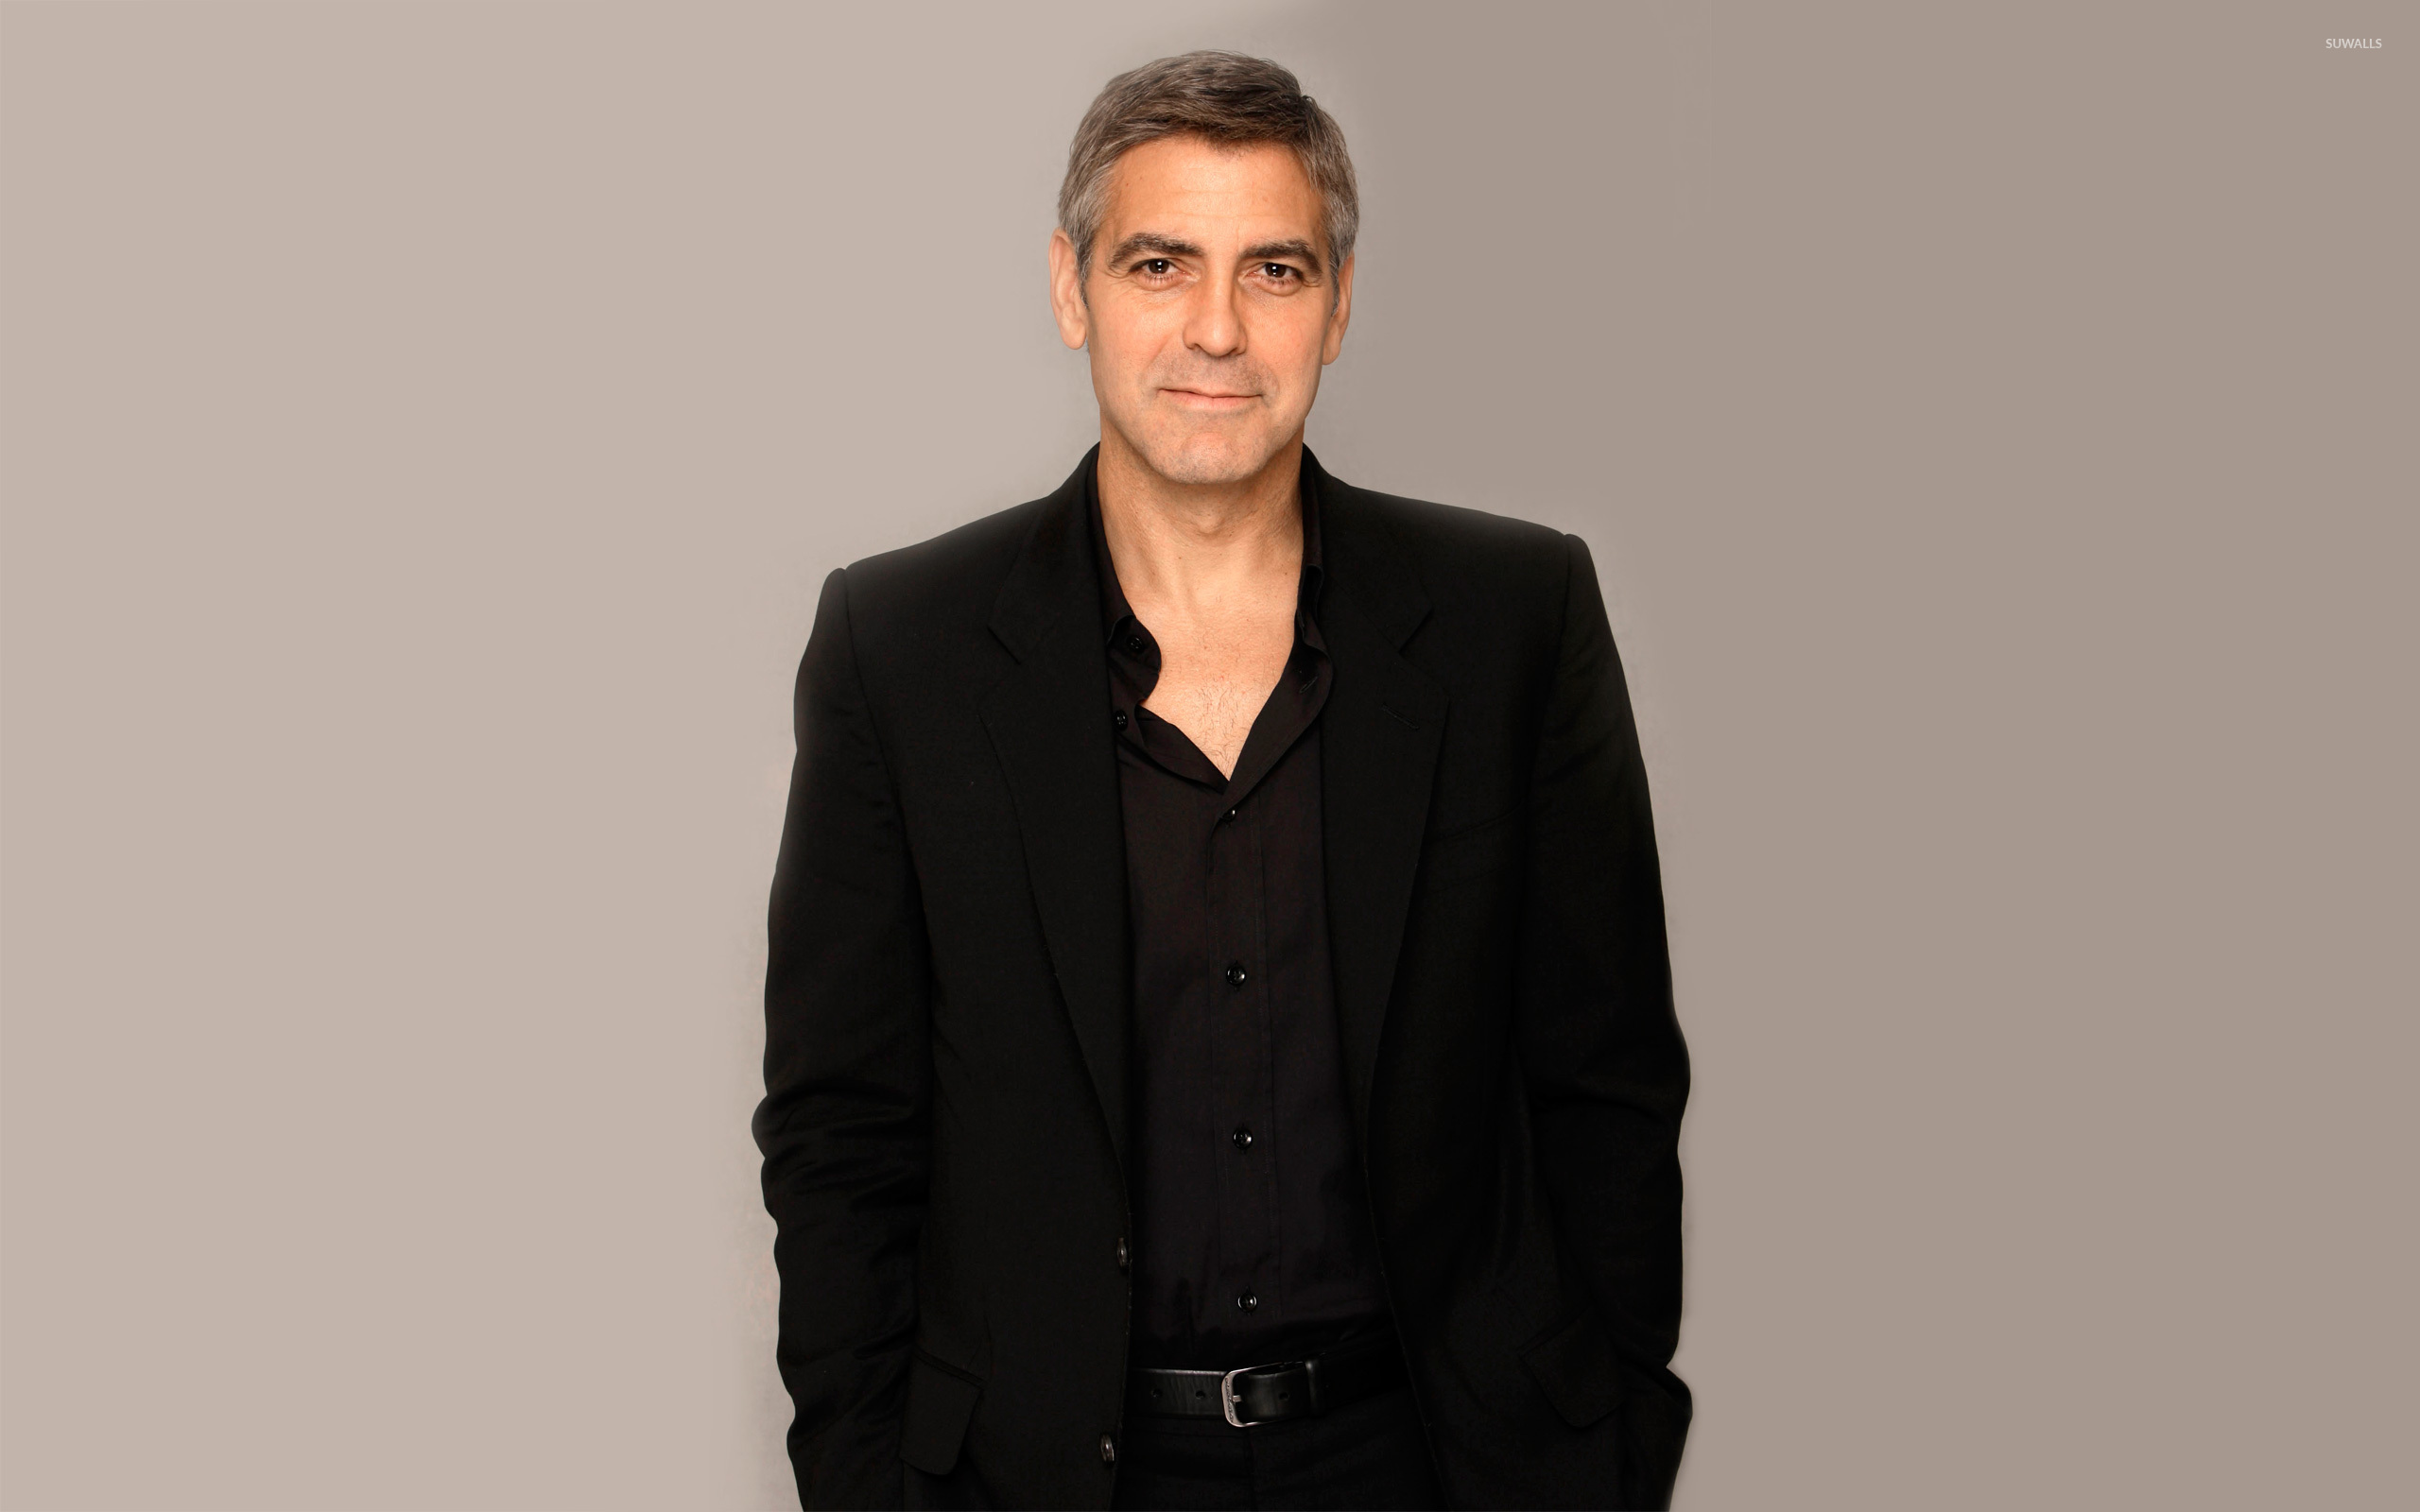 George Clooney Wallpapers   Top George Clooney Backgrounds 2560x1600